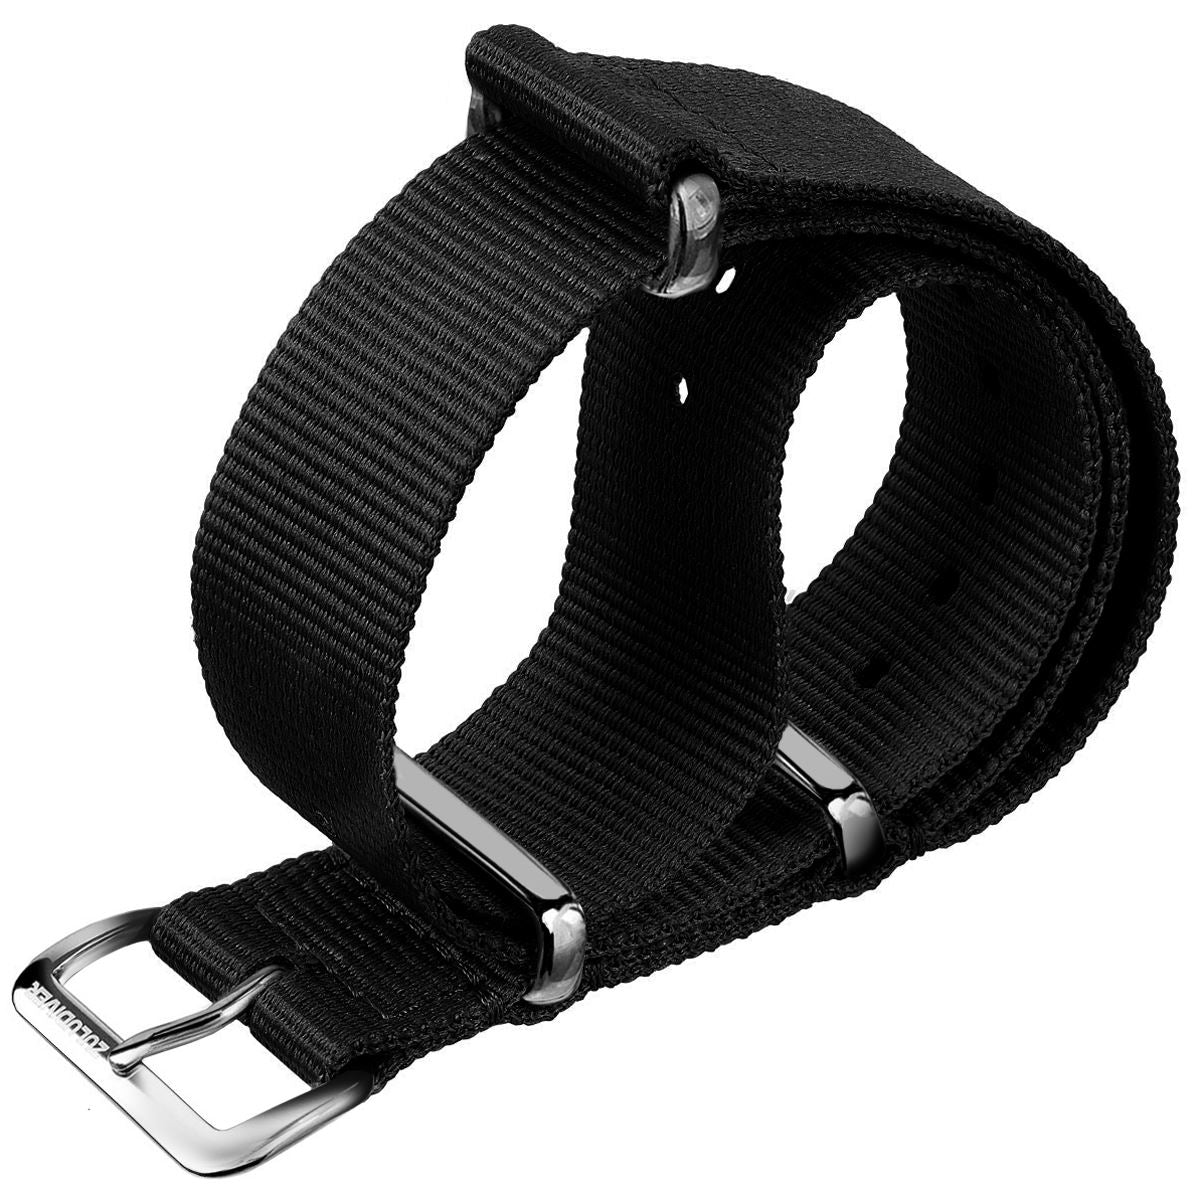 Classic ZULUDIVER Black Combat NATO Watch Strap, Polished Hardware